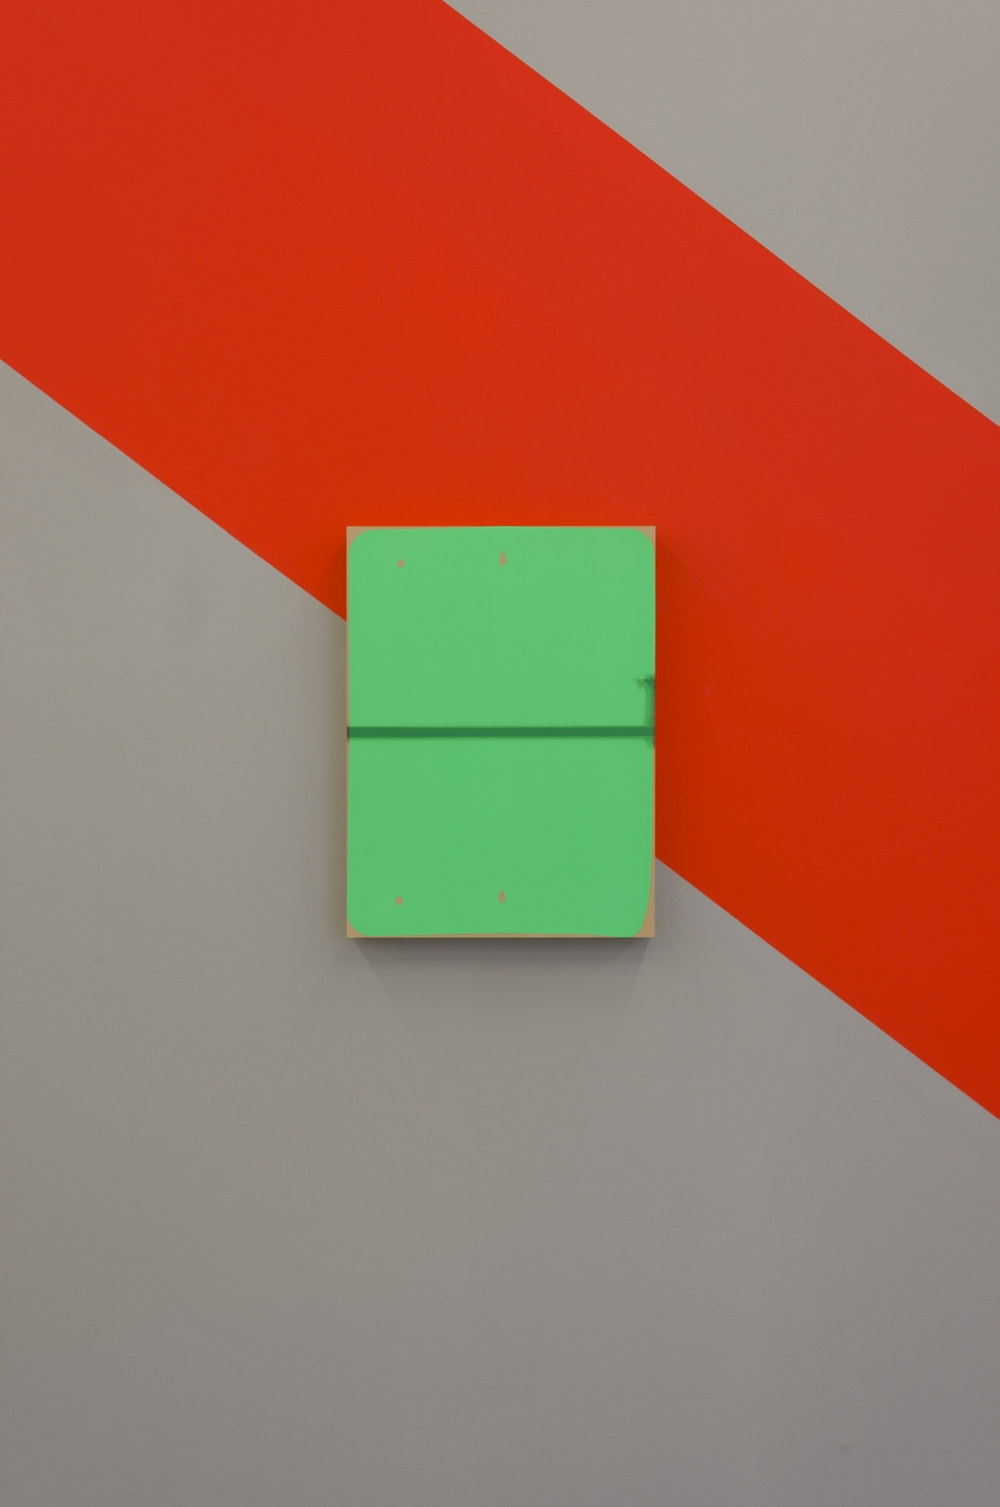 The Signifier (Right) , 2013 mural with panel: Ultra-Matte Video Green Acrylic, Oil on MRMDF, dimensions variable